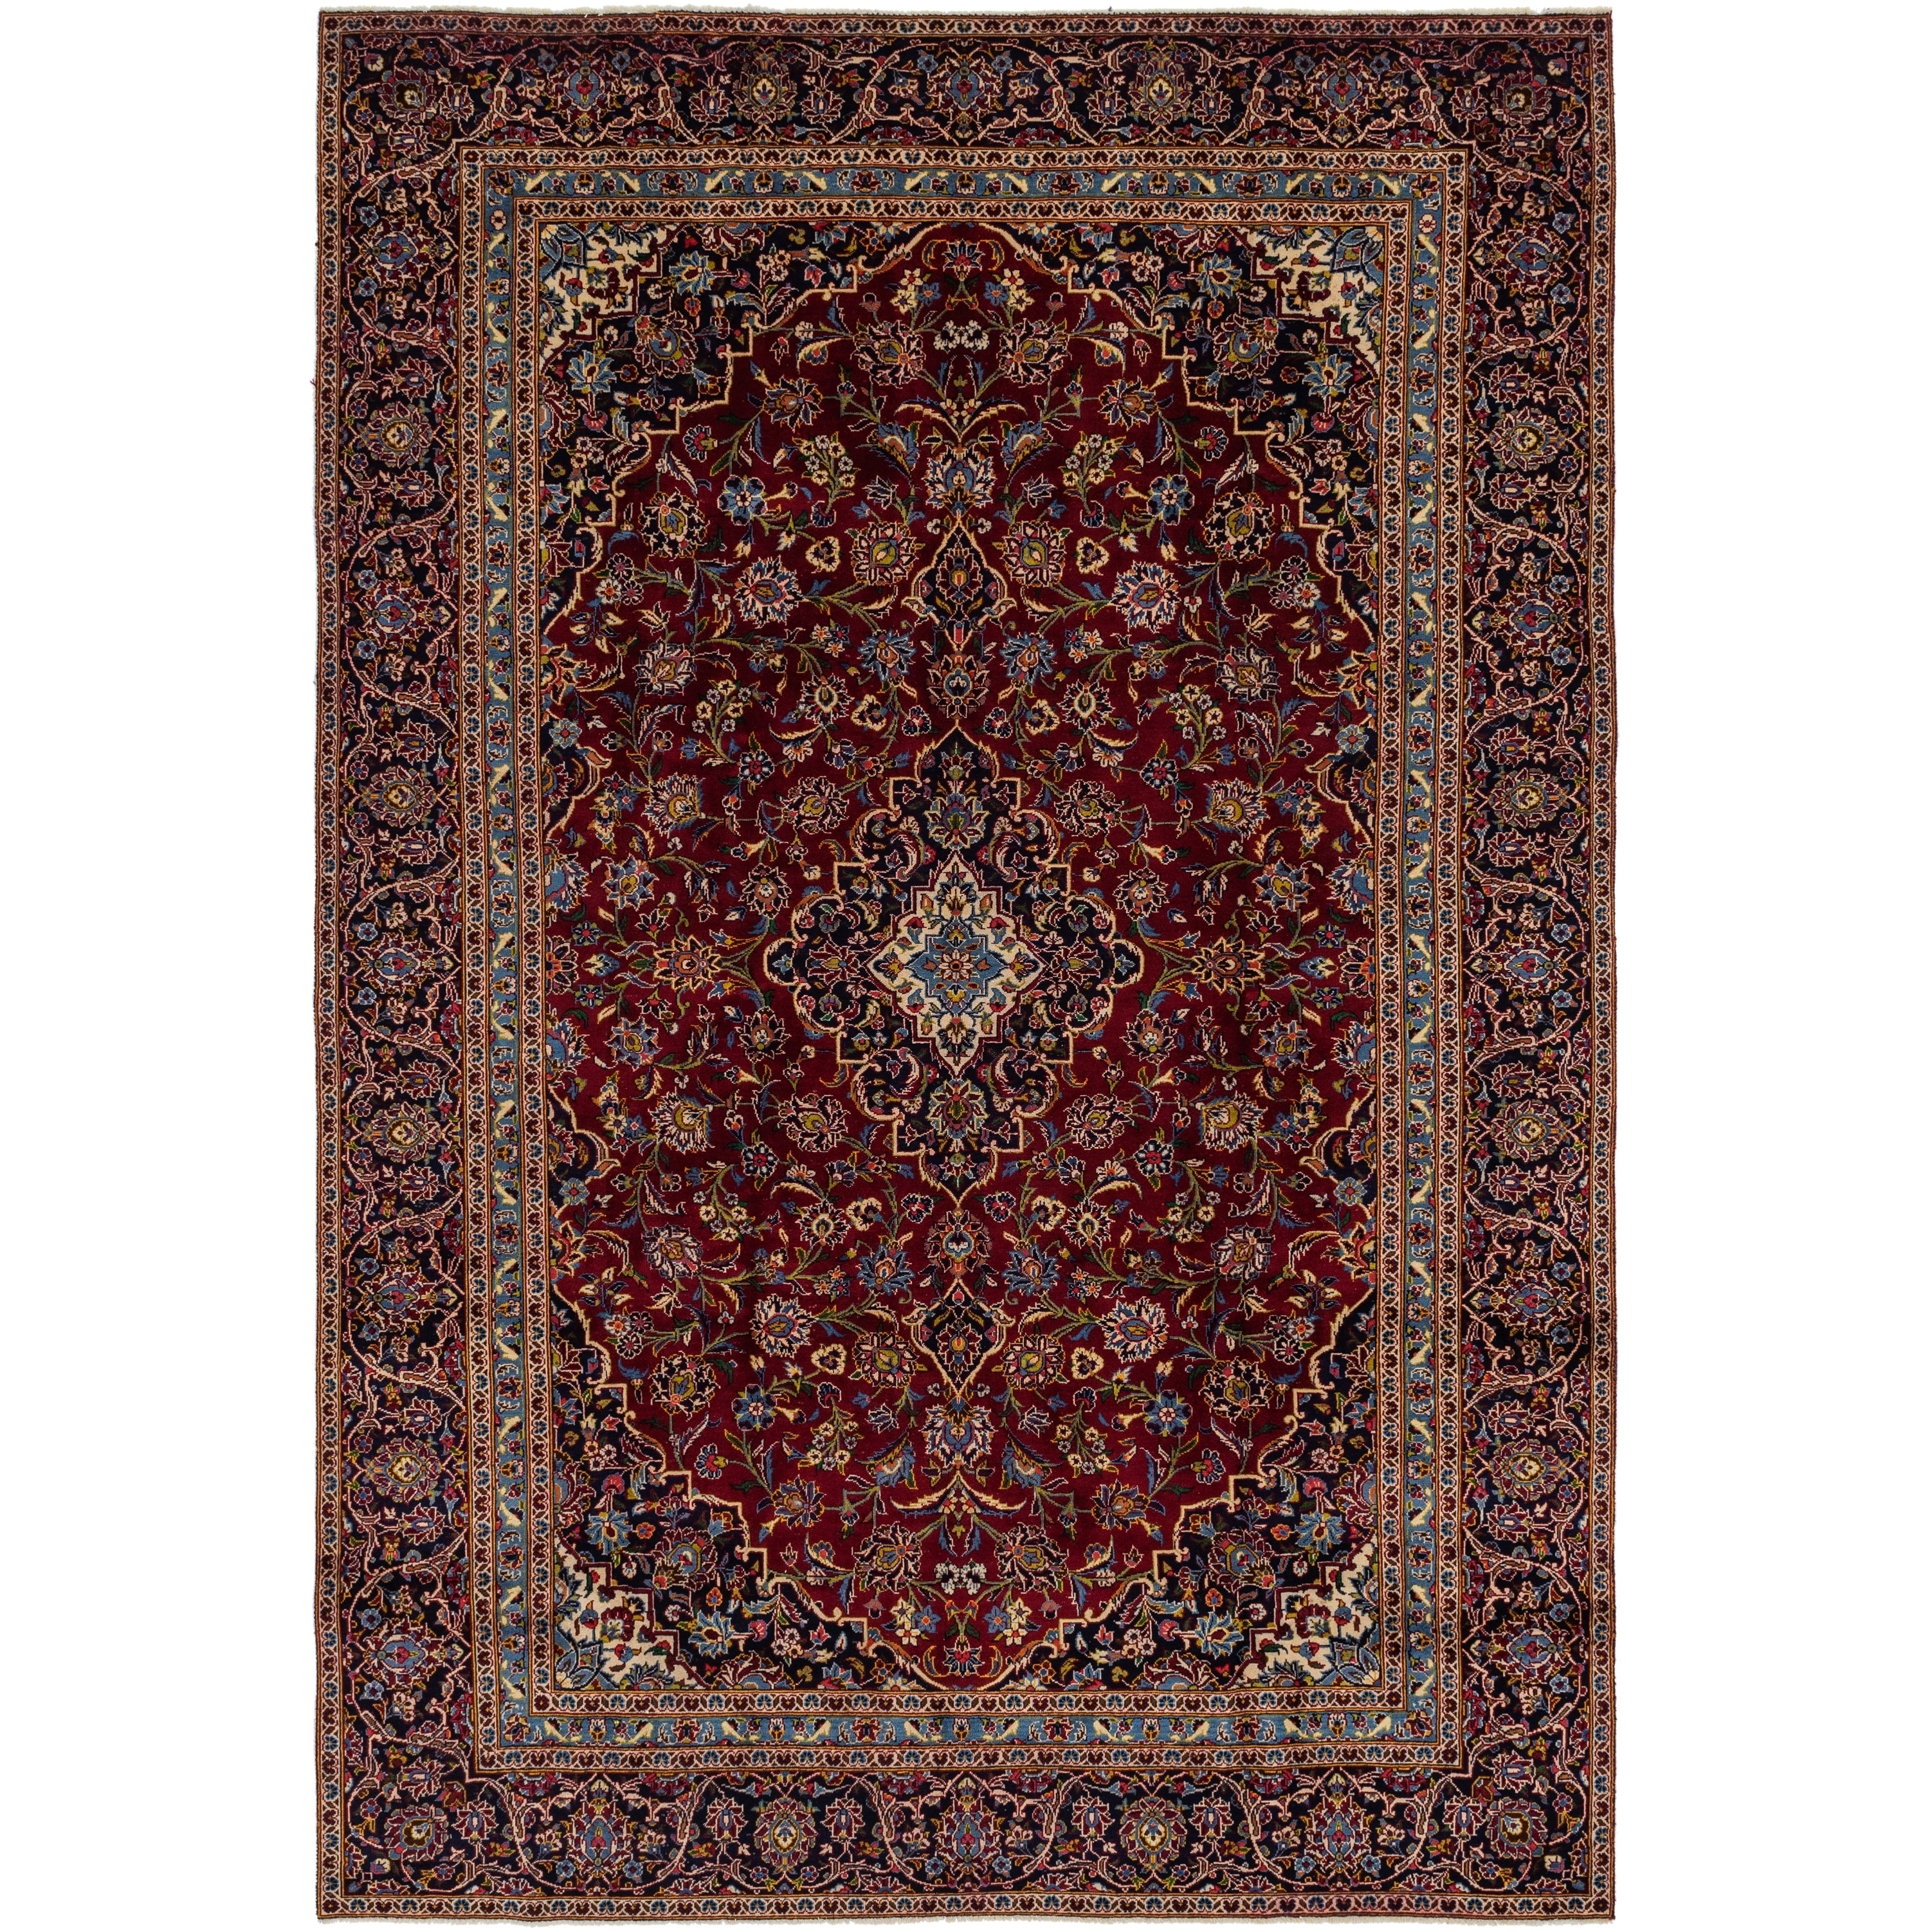 Hand Knotted Kashan Wool Area Rug - 8 9 x 13 (Red - 8 9 x 13)